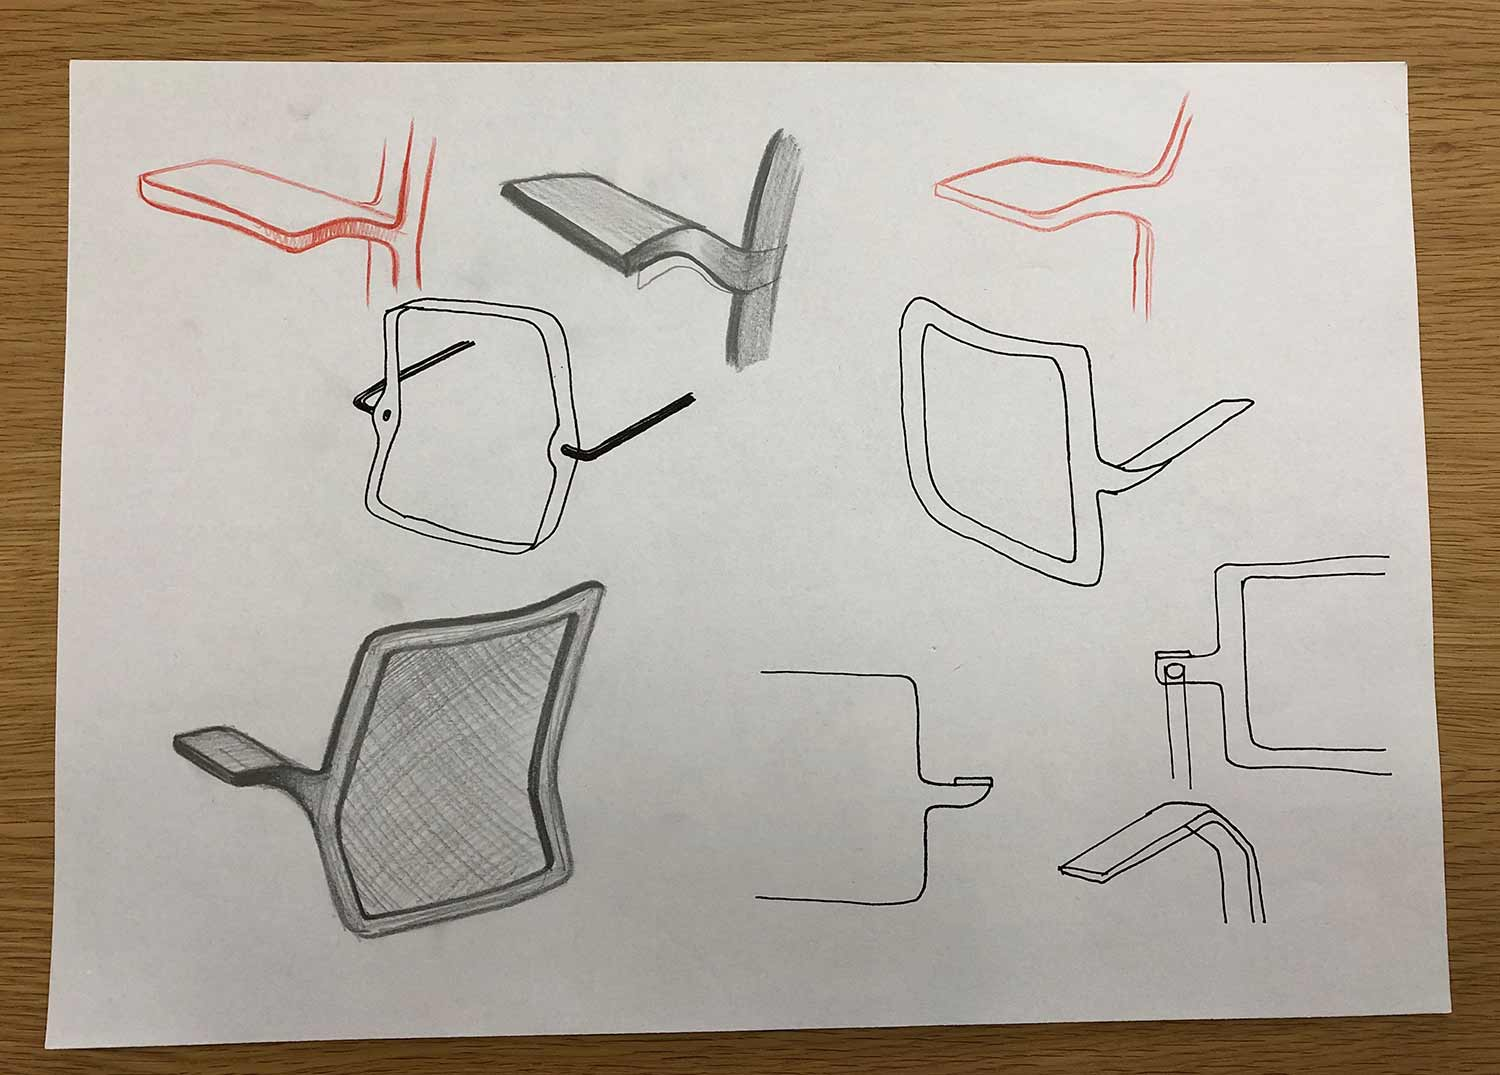 early sketches of backrest ideas for giroflex 161 chair